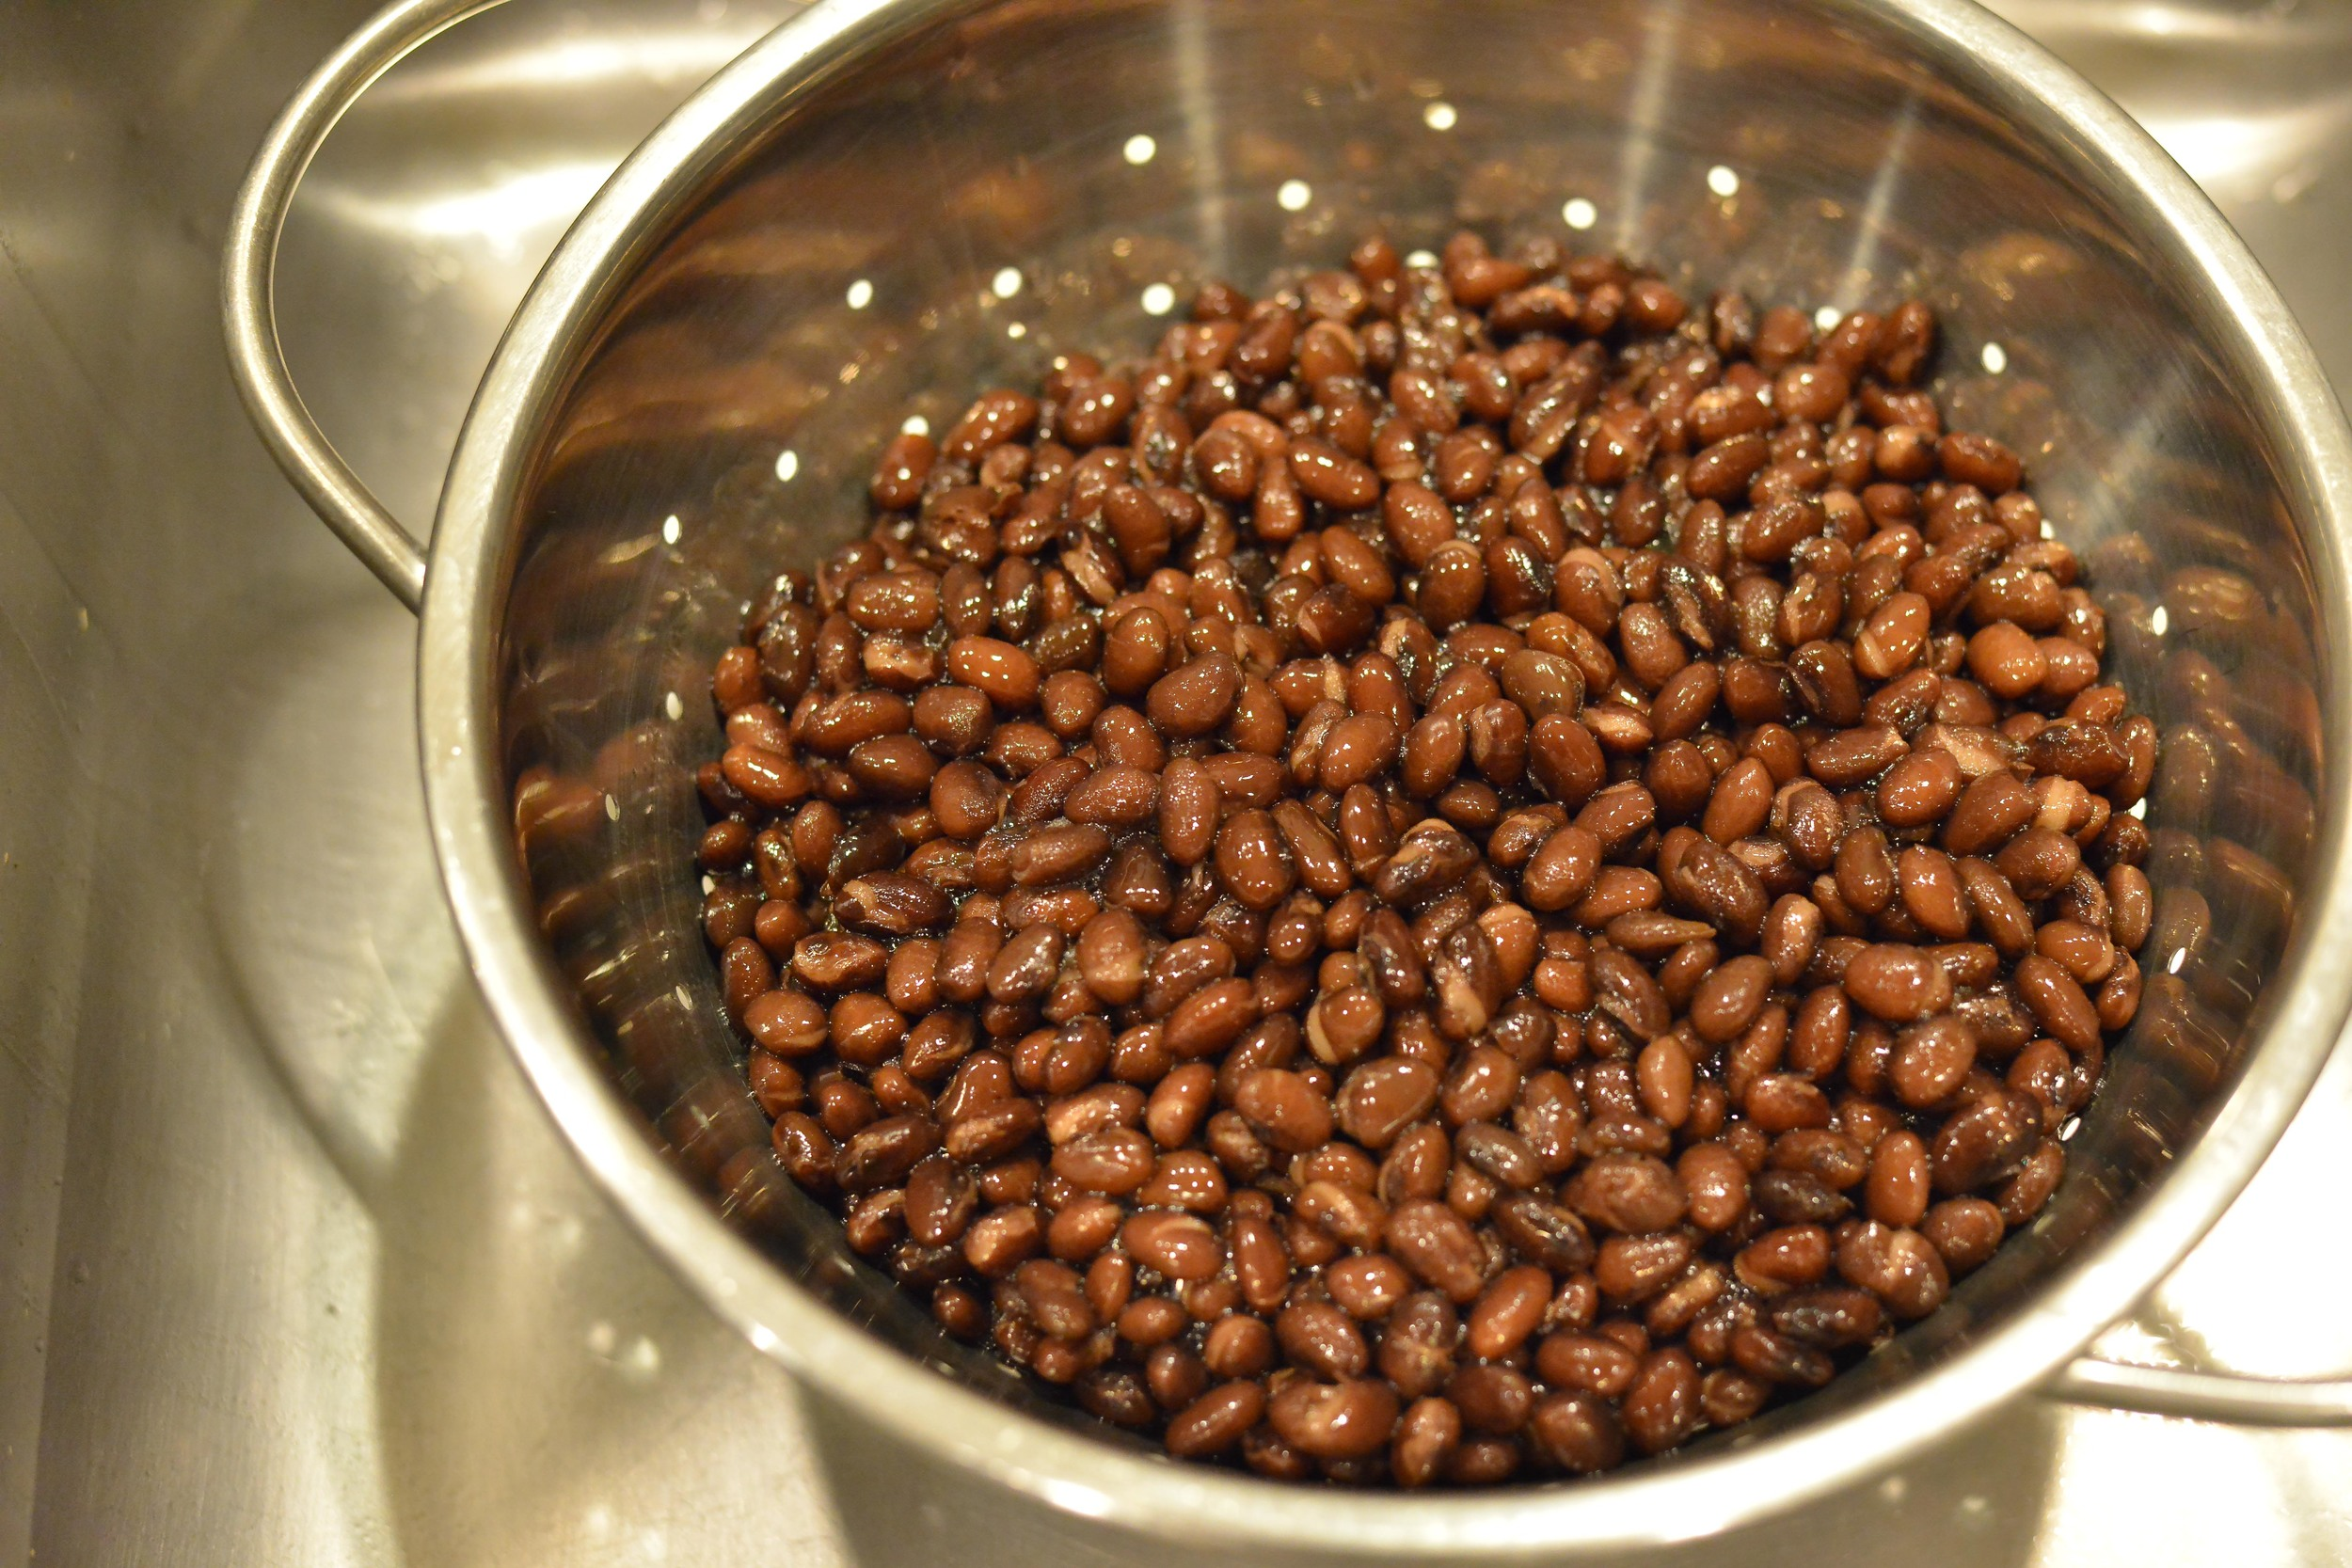 Beans are alow priced nutrition power-house!